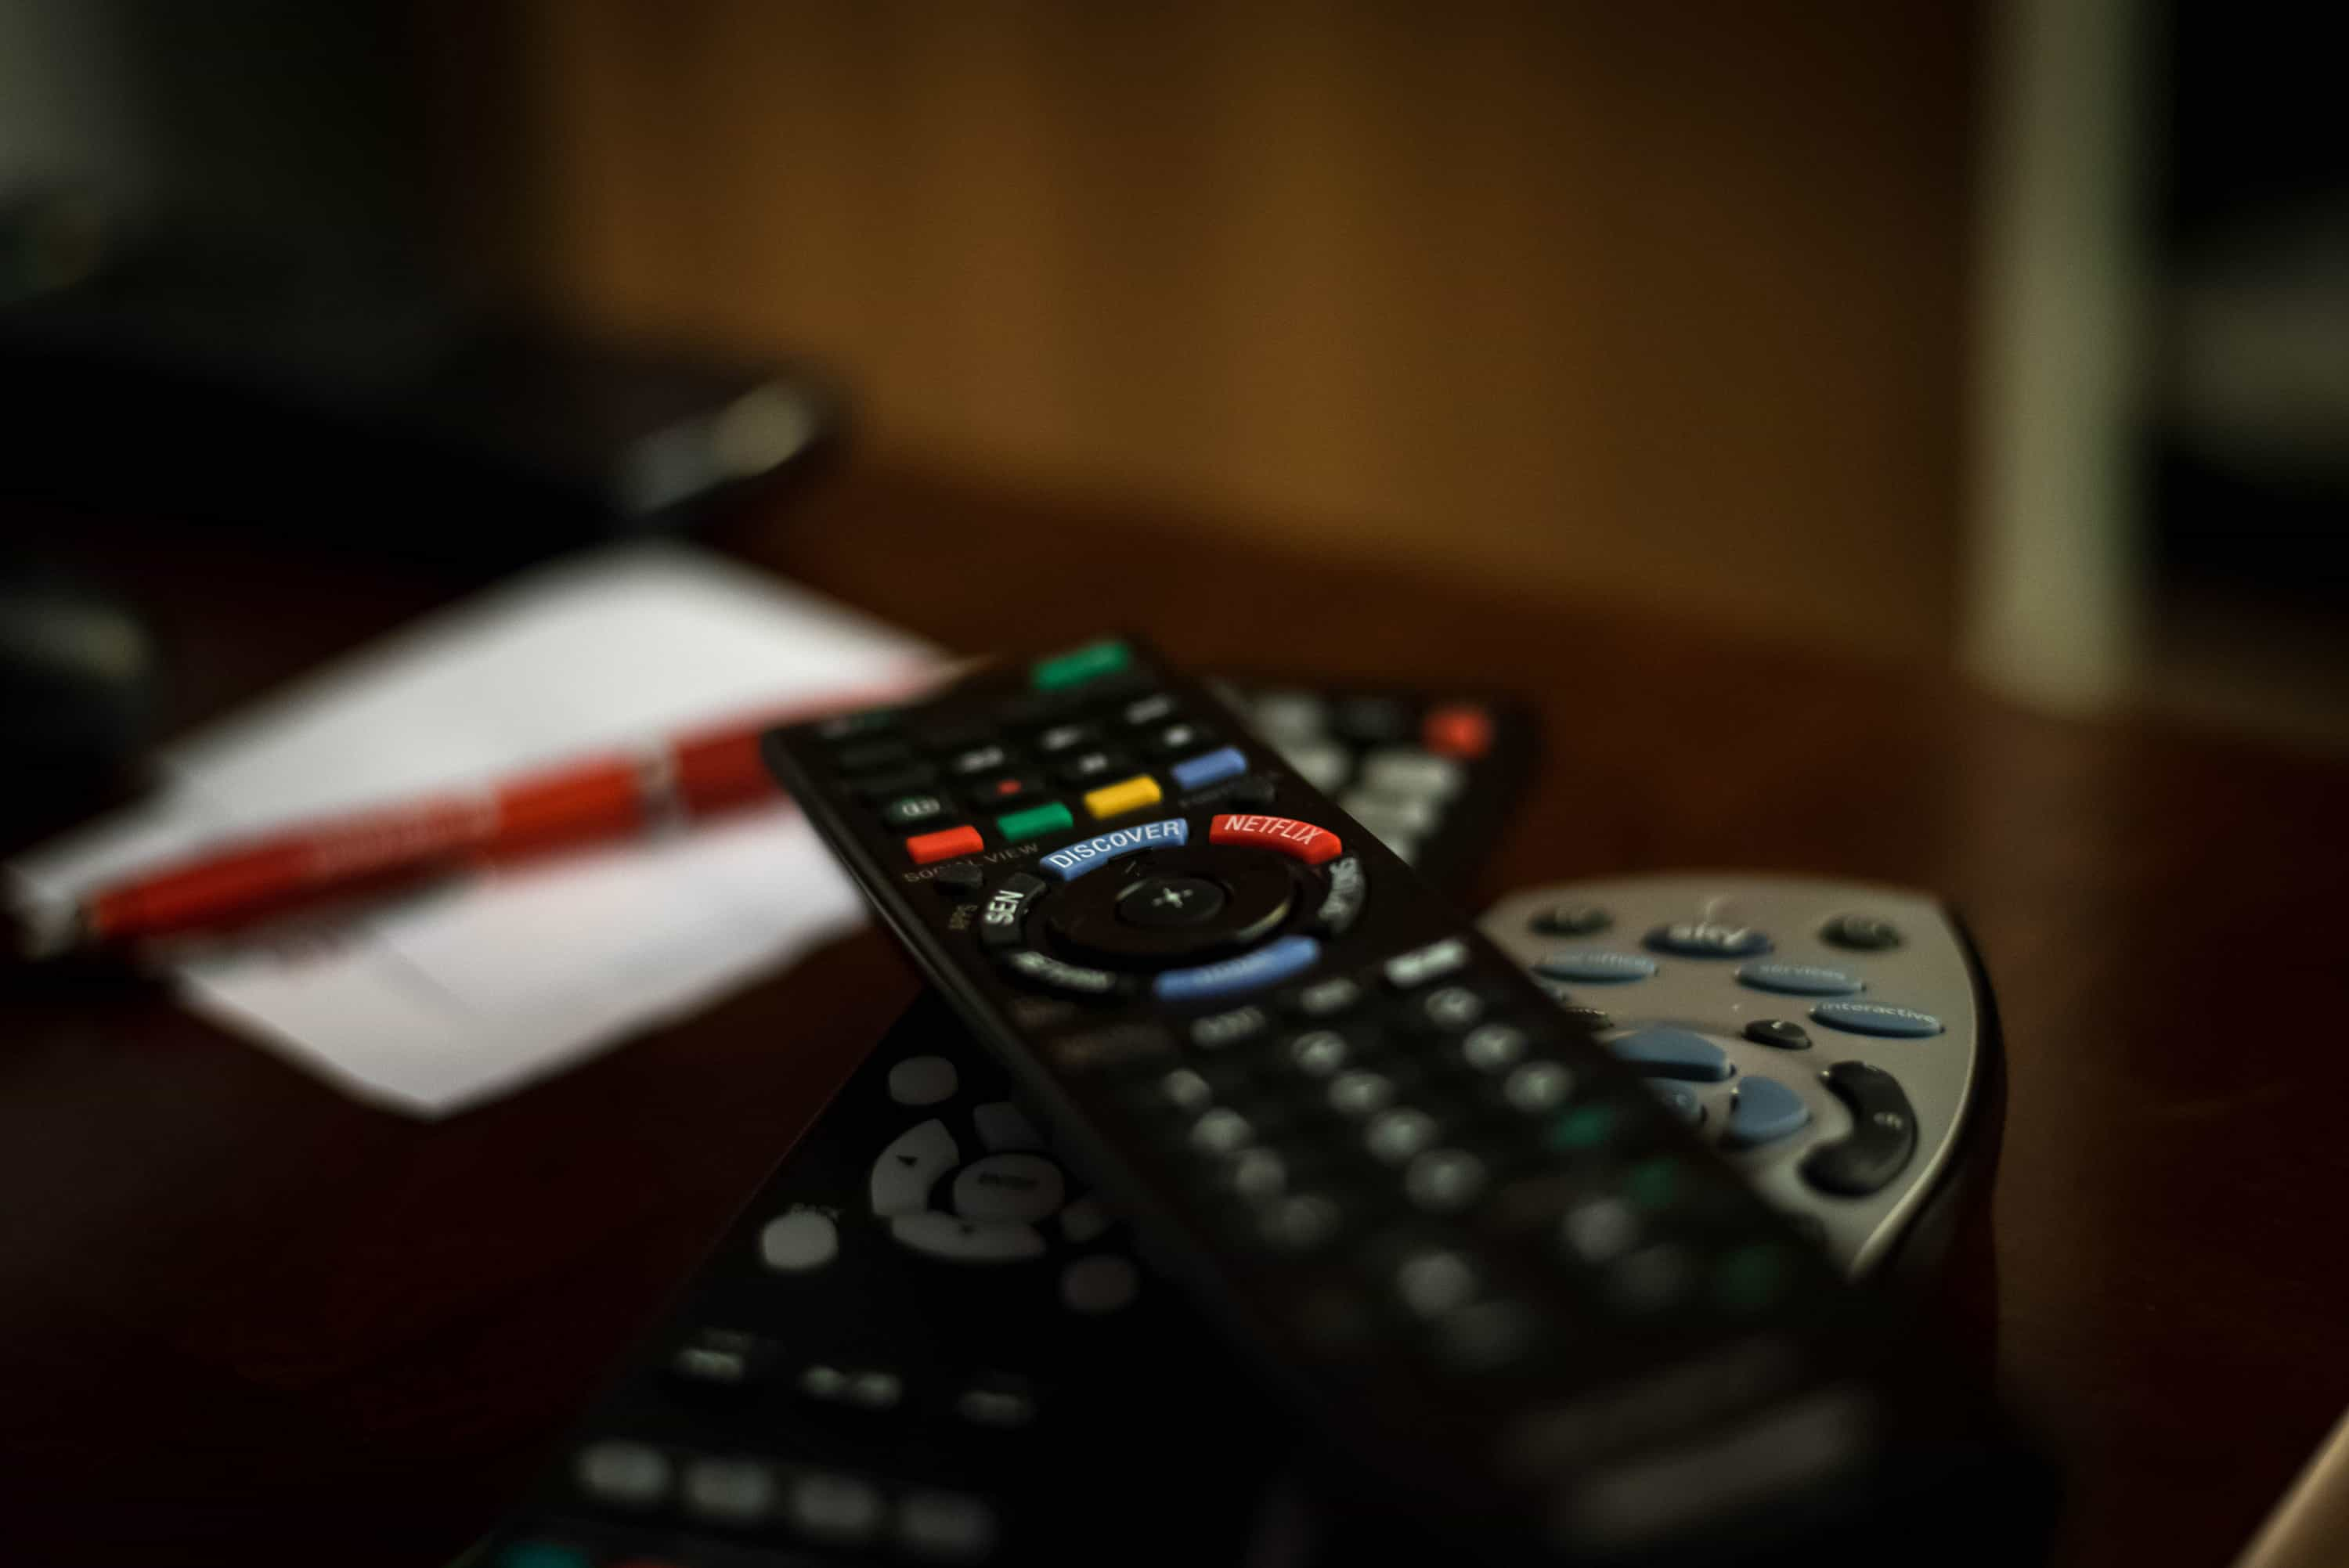 How to Hack a Hotel TV to Watch Netflix, Amazon Prime, Hulu, and Others